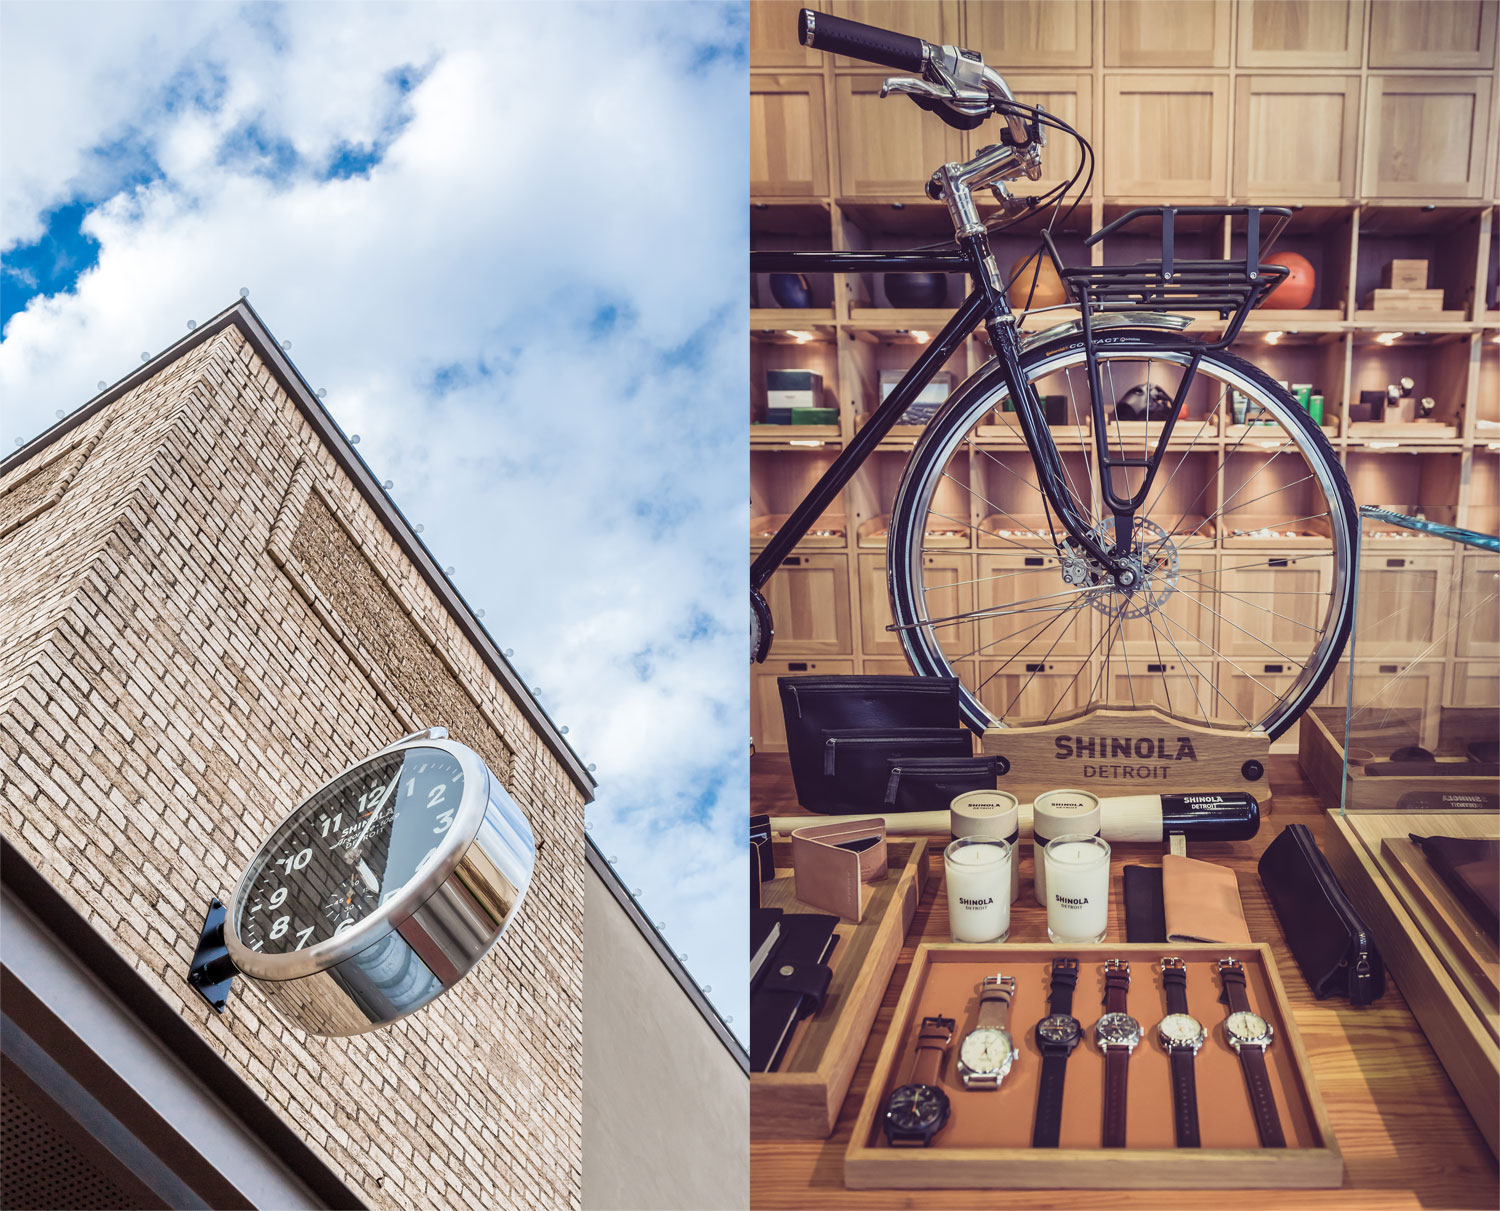 HISTORIC-DOWNTOWN-PLANO-ARTS-DISTRICT-PLANO-MAGAZINE-SHINOLA